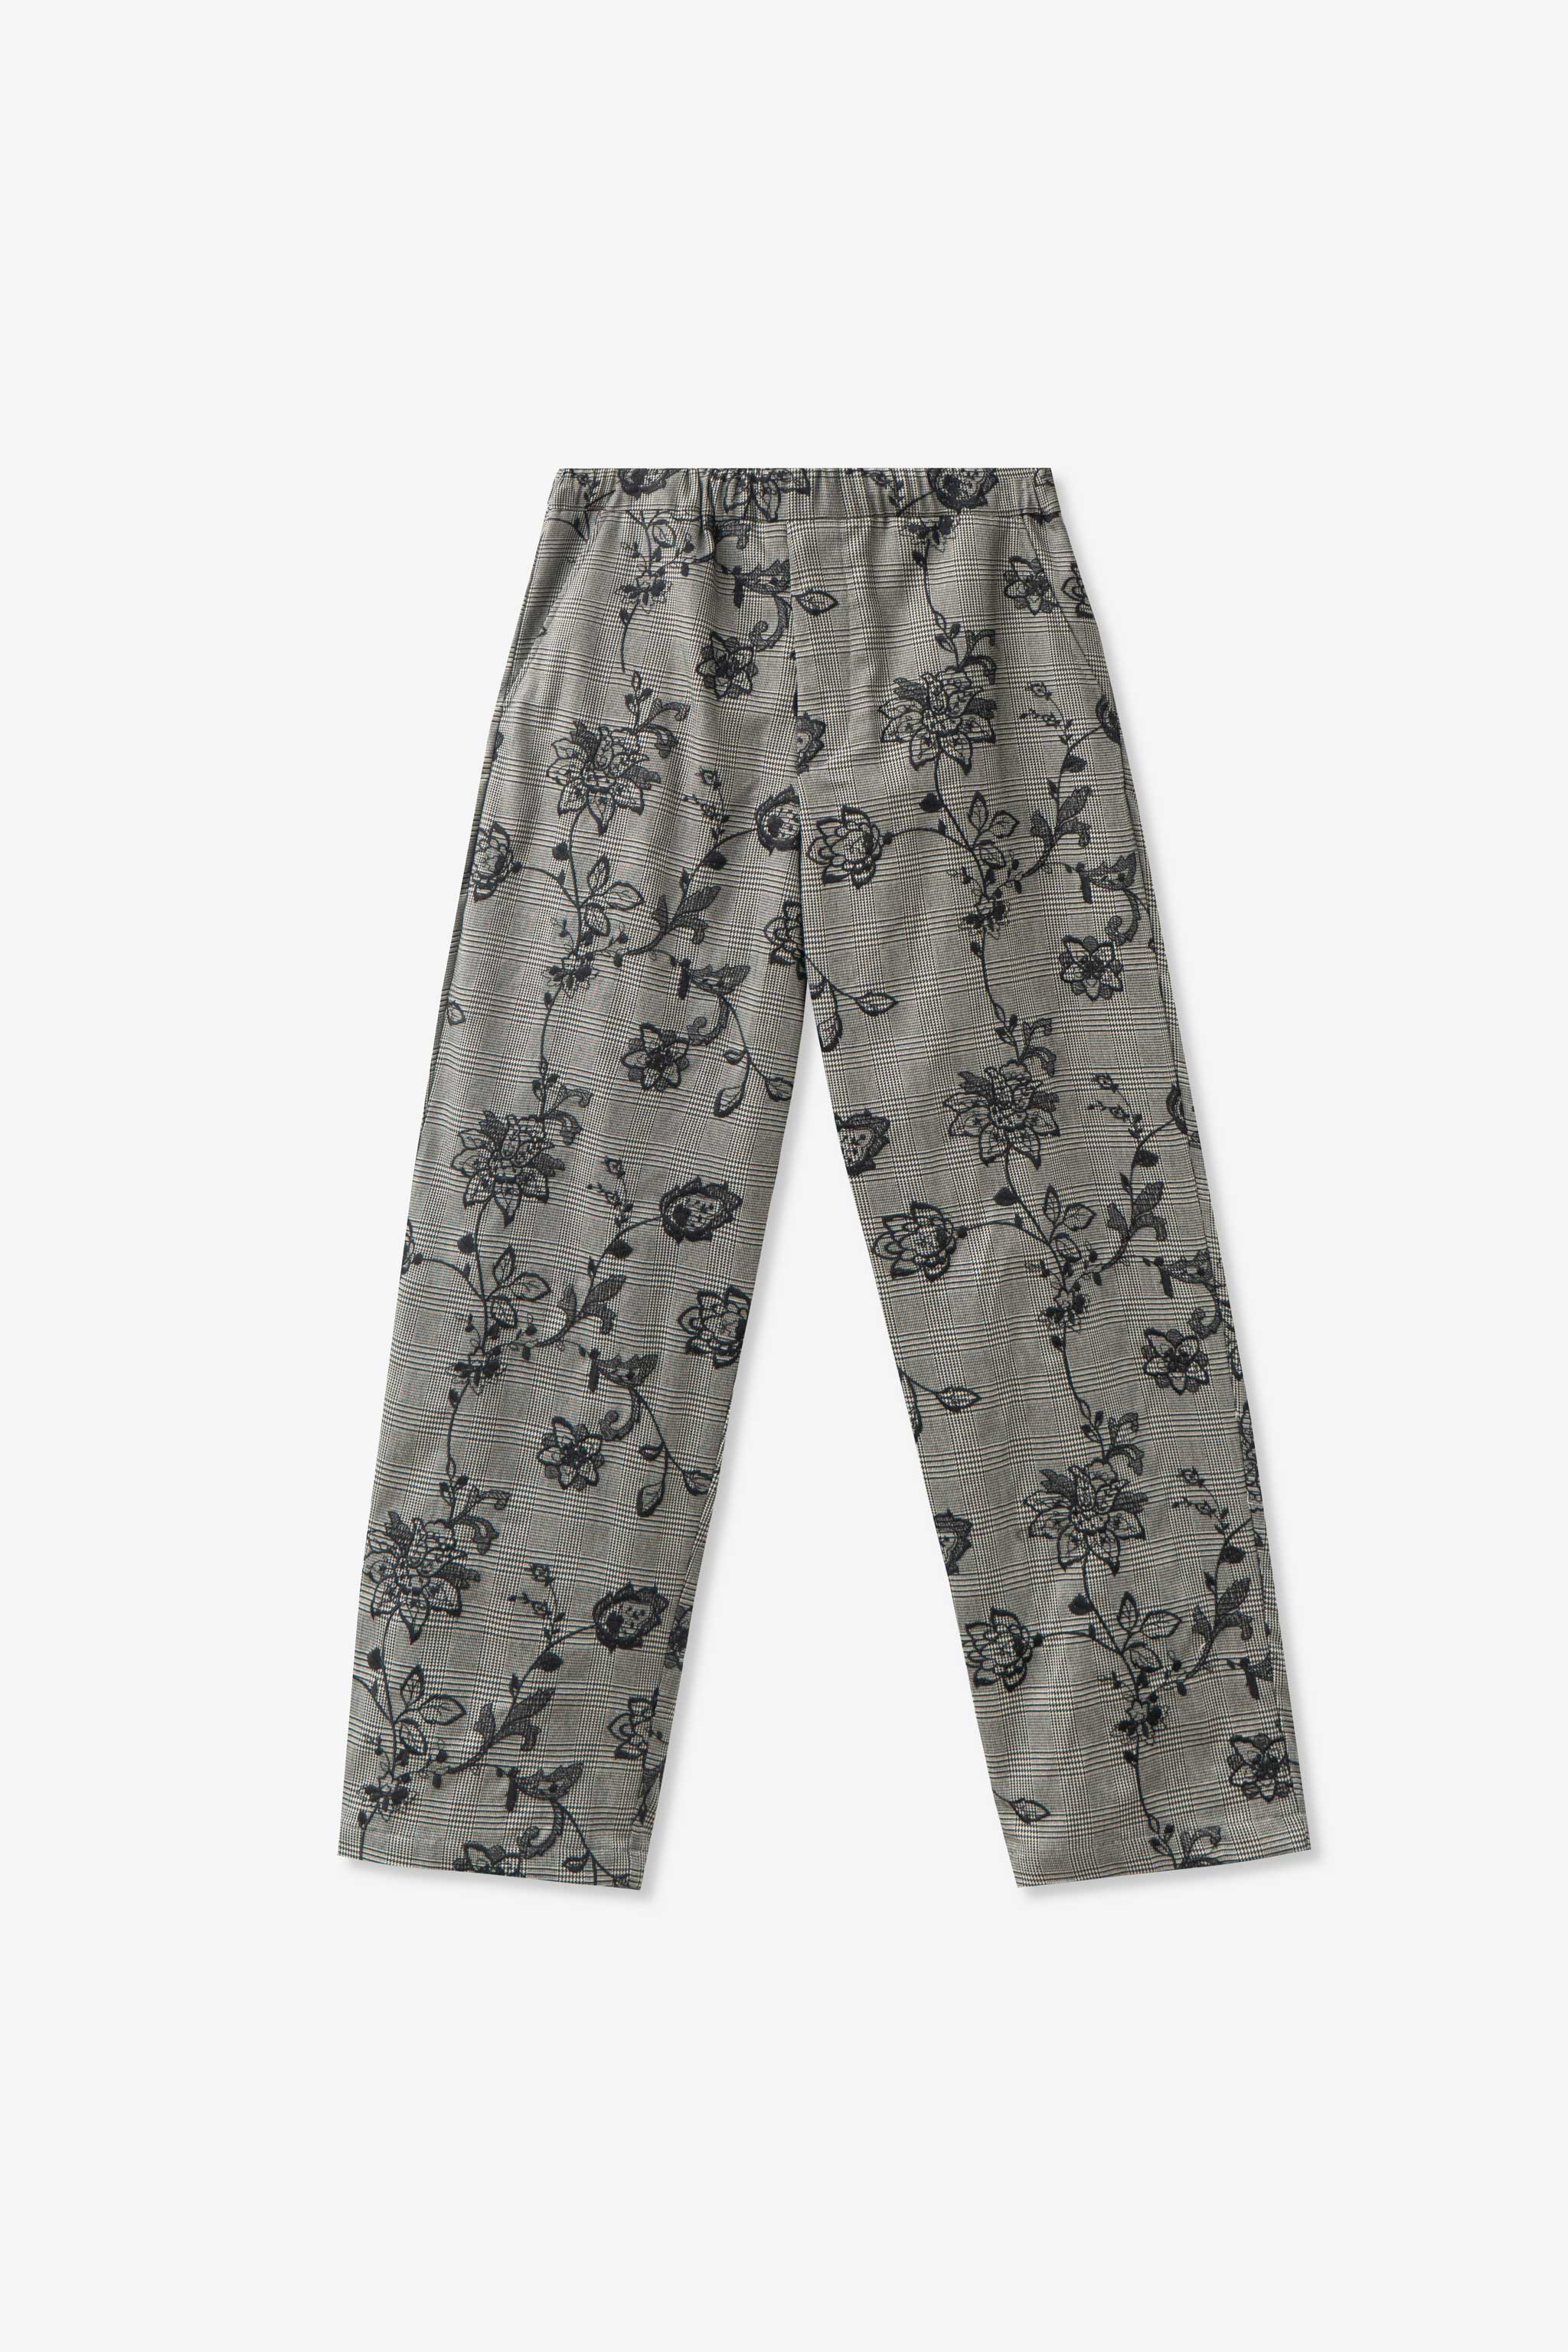 Easy Street Trouser - SALVAGE PROGRAM Floral Plaid